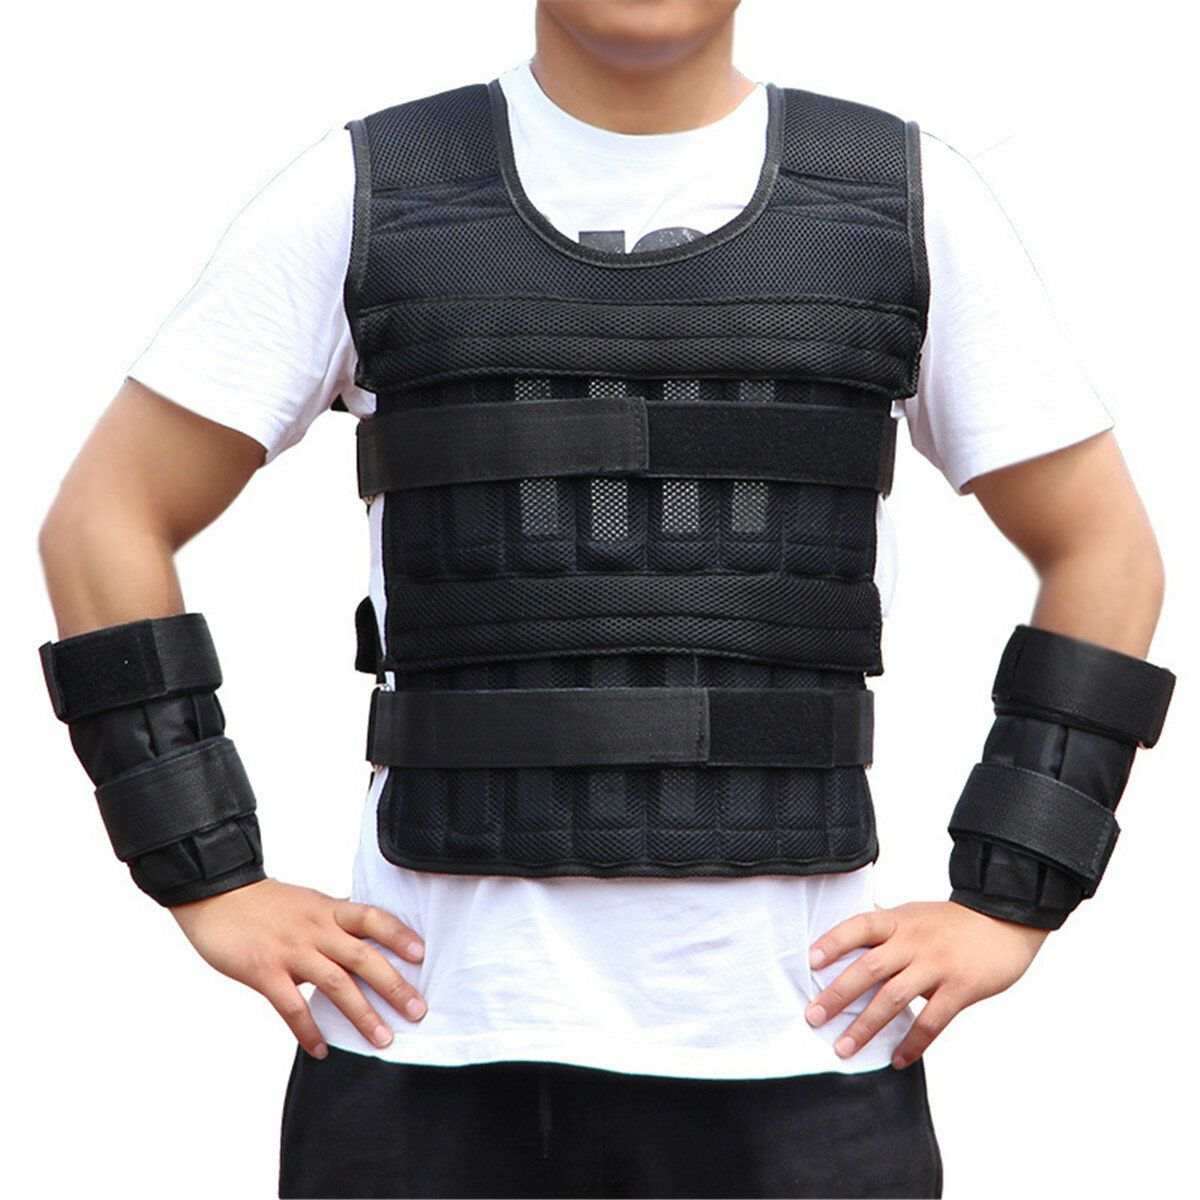 Adjustable Tactical Weight Plate Carrier Protective Clothing For Training Sport Sports Protective Gear